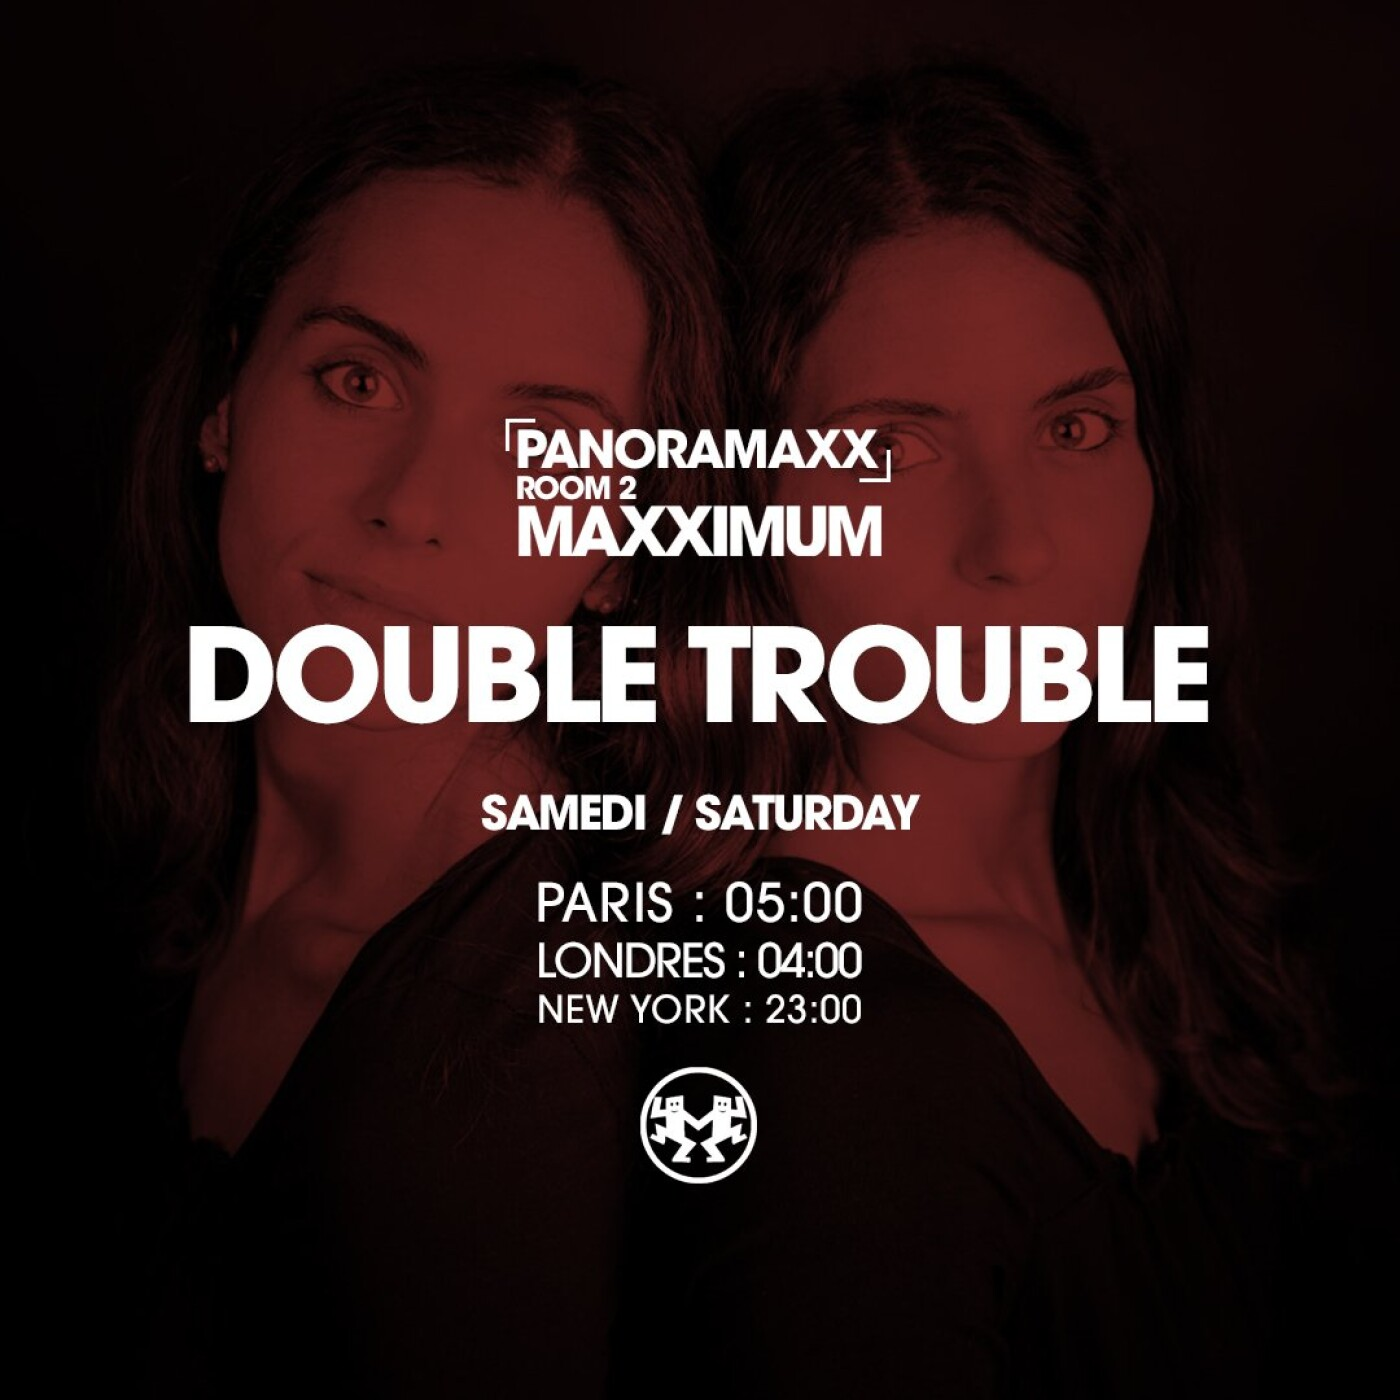 PANORAMAXX : DOUBLE TROUBLE